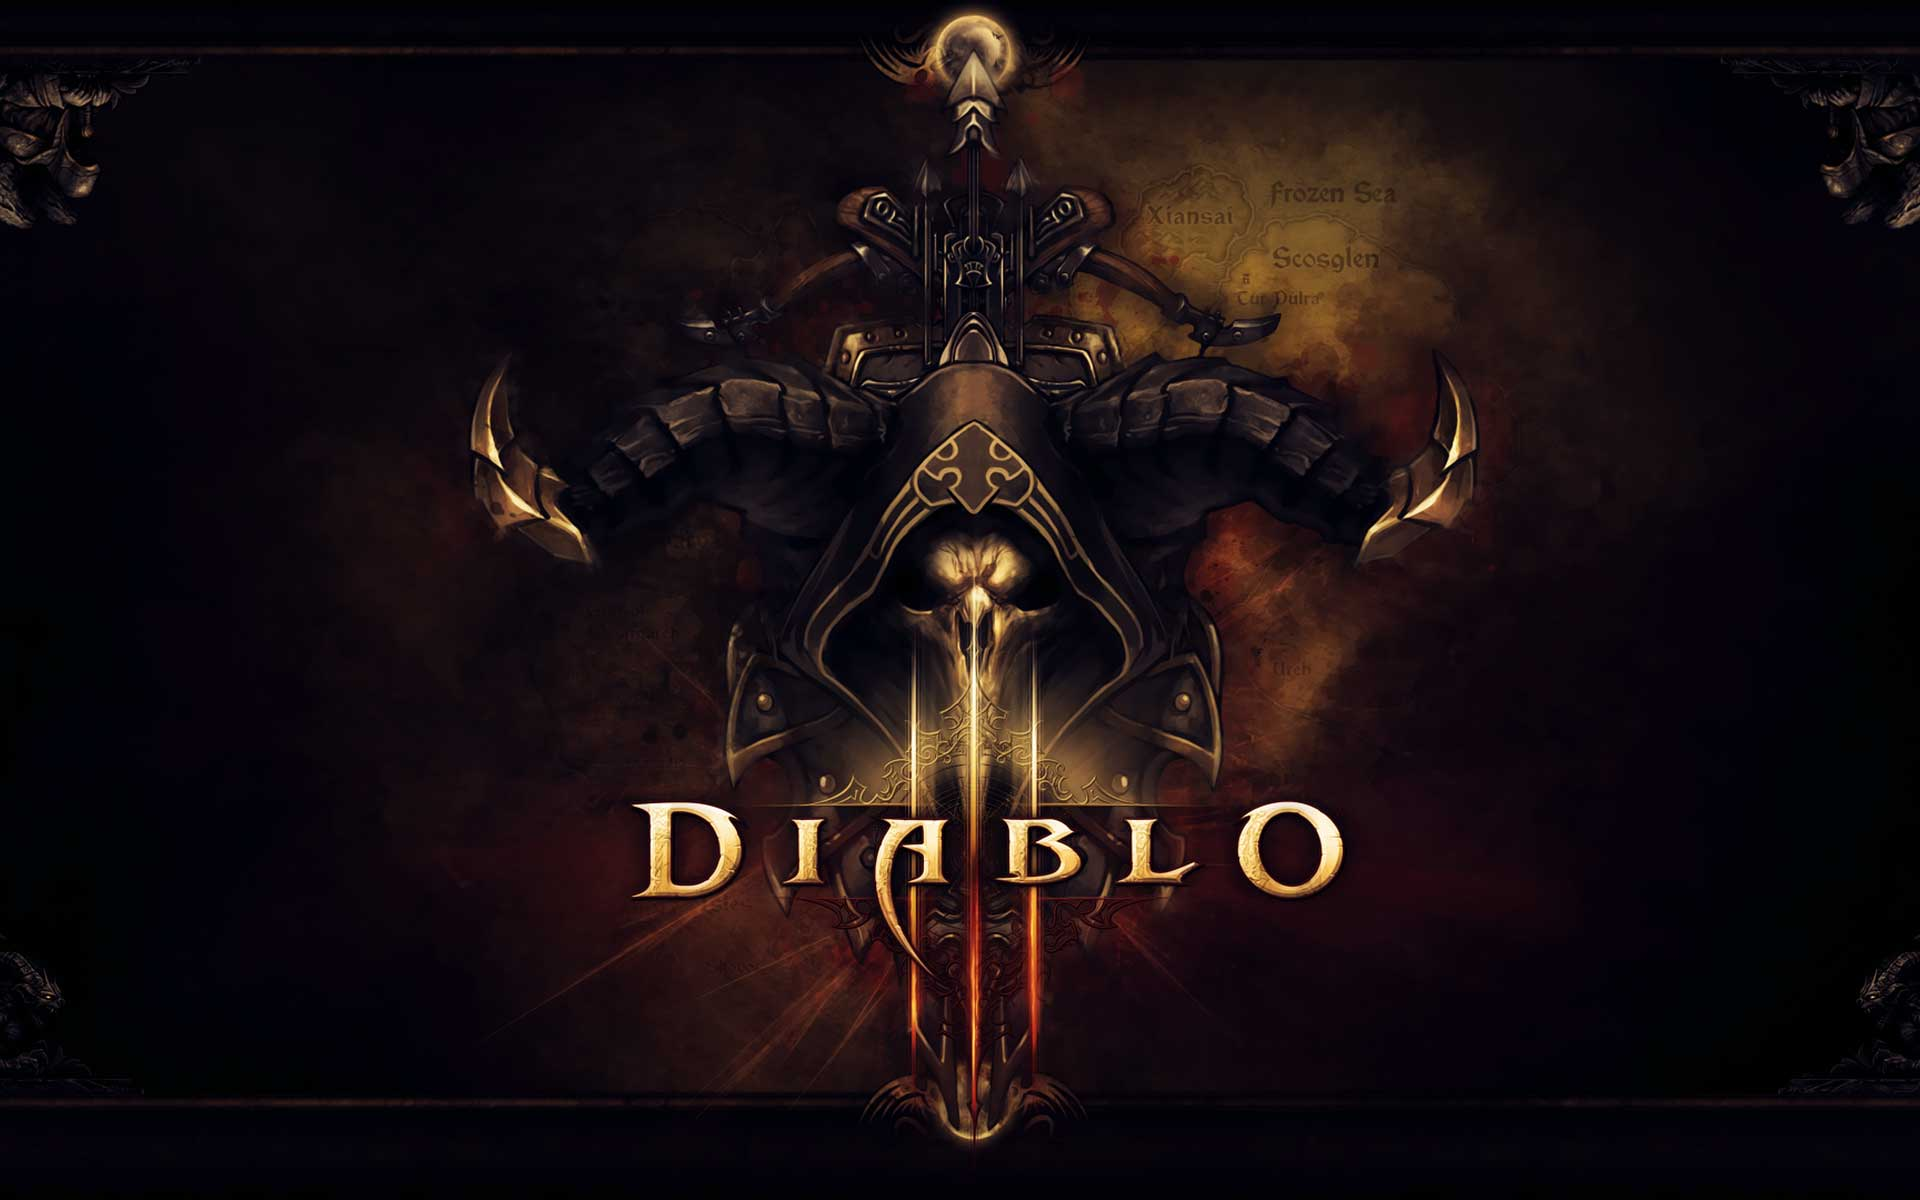 http://rozup.ir/up/gamehouse/Pictures/diablo_3_demon_hunter_wallpaper.jpg